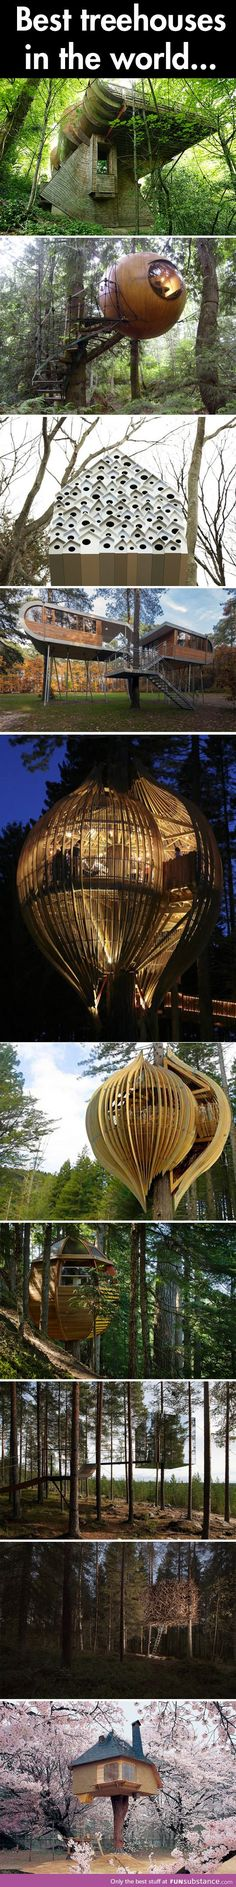 Tree houses of the world... yes please!